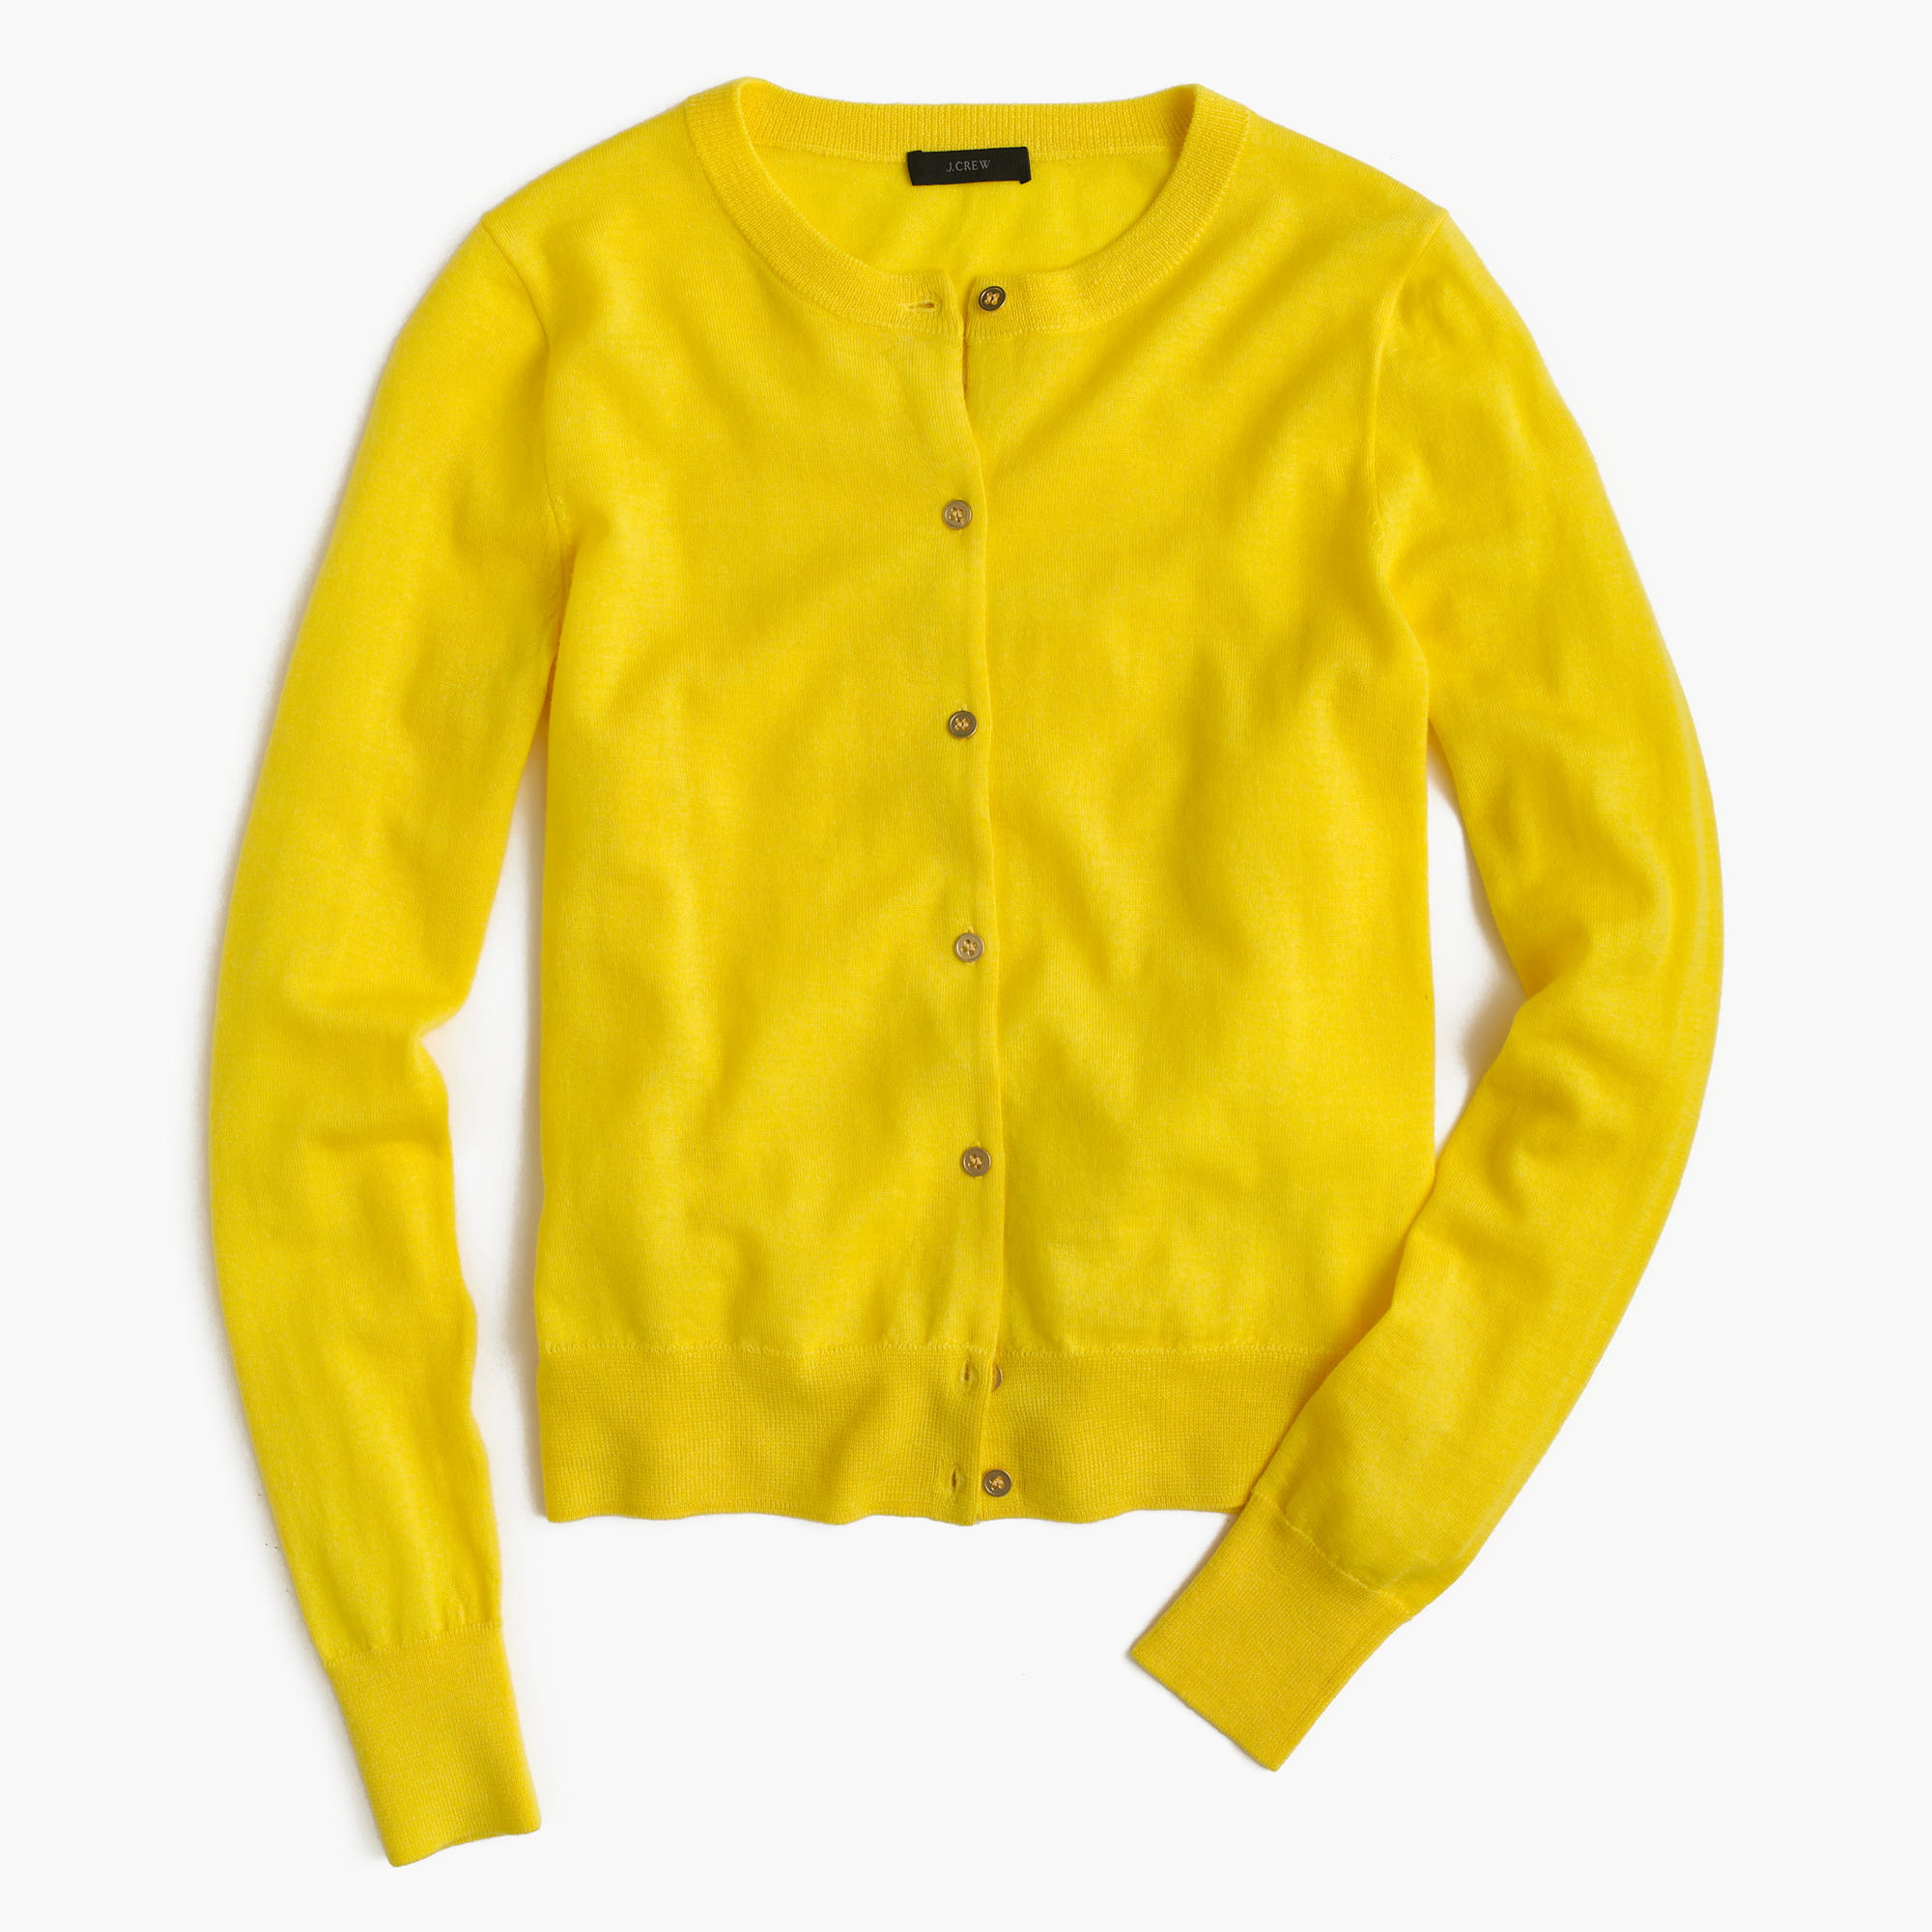 J.crew Lightweight Wool Jackie Cardigan Sweater in Yellow | Lyst